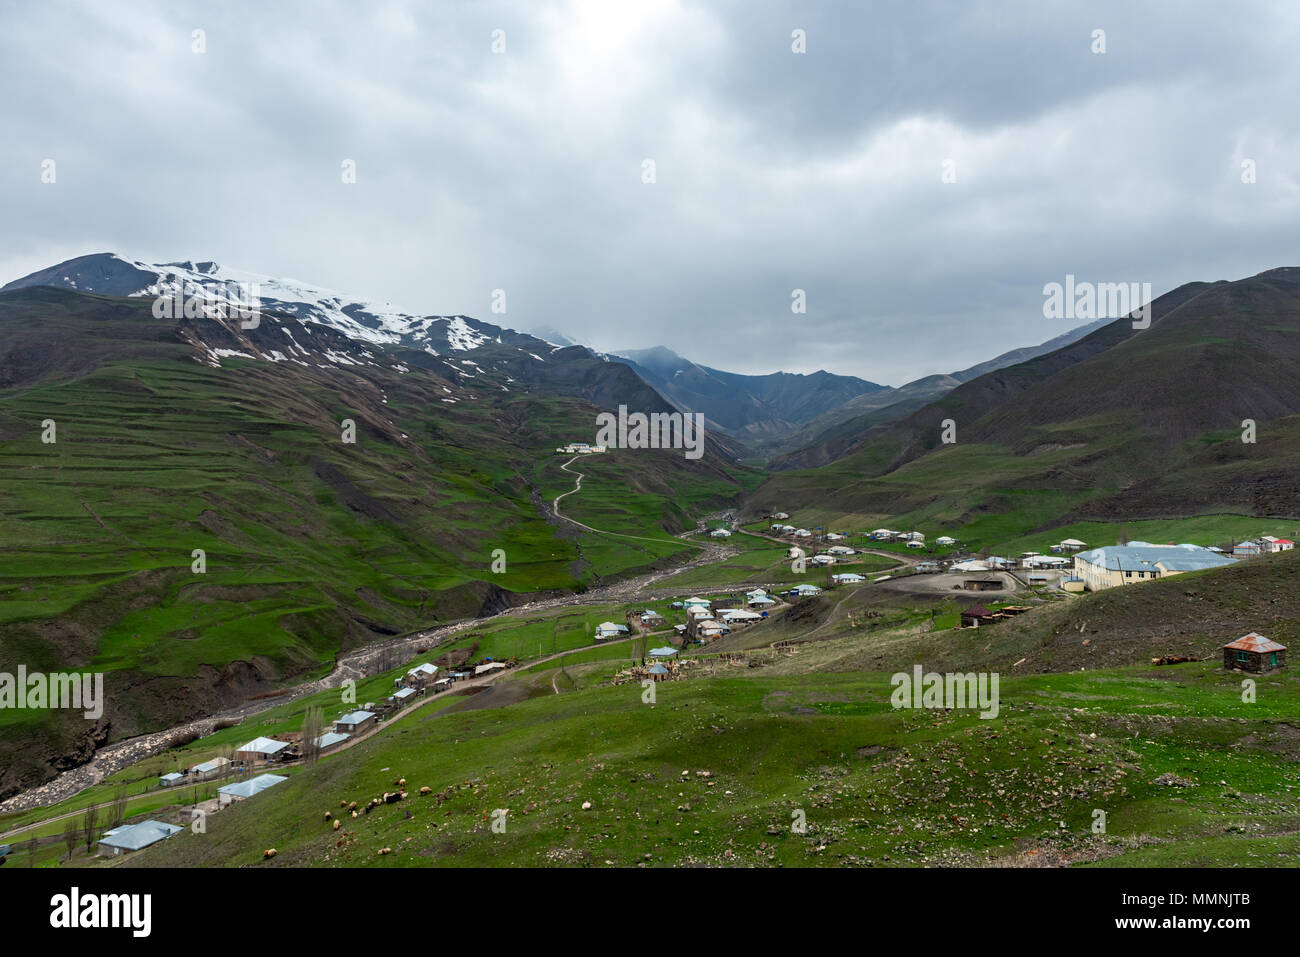 Ancient highmountains village Khynalyg, Azerbaijan. Buildings, houses and way of life - Stock Image